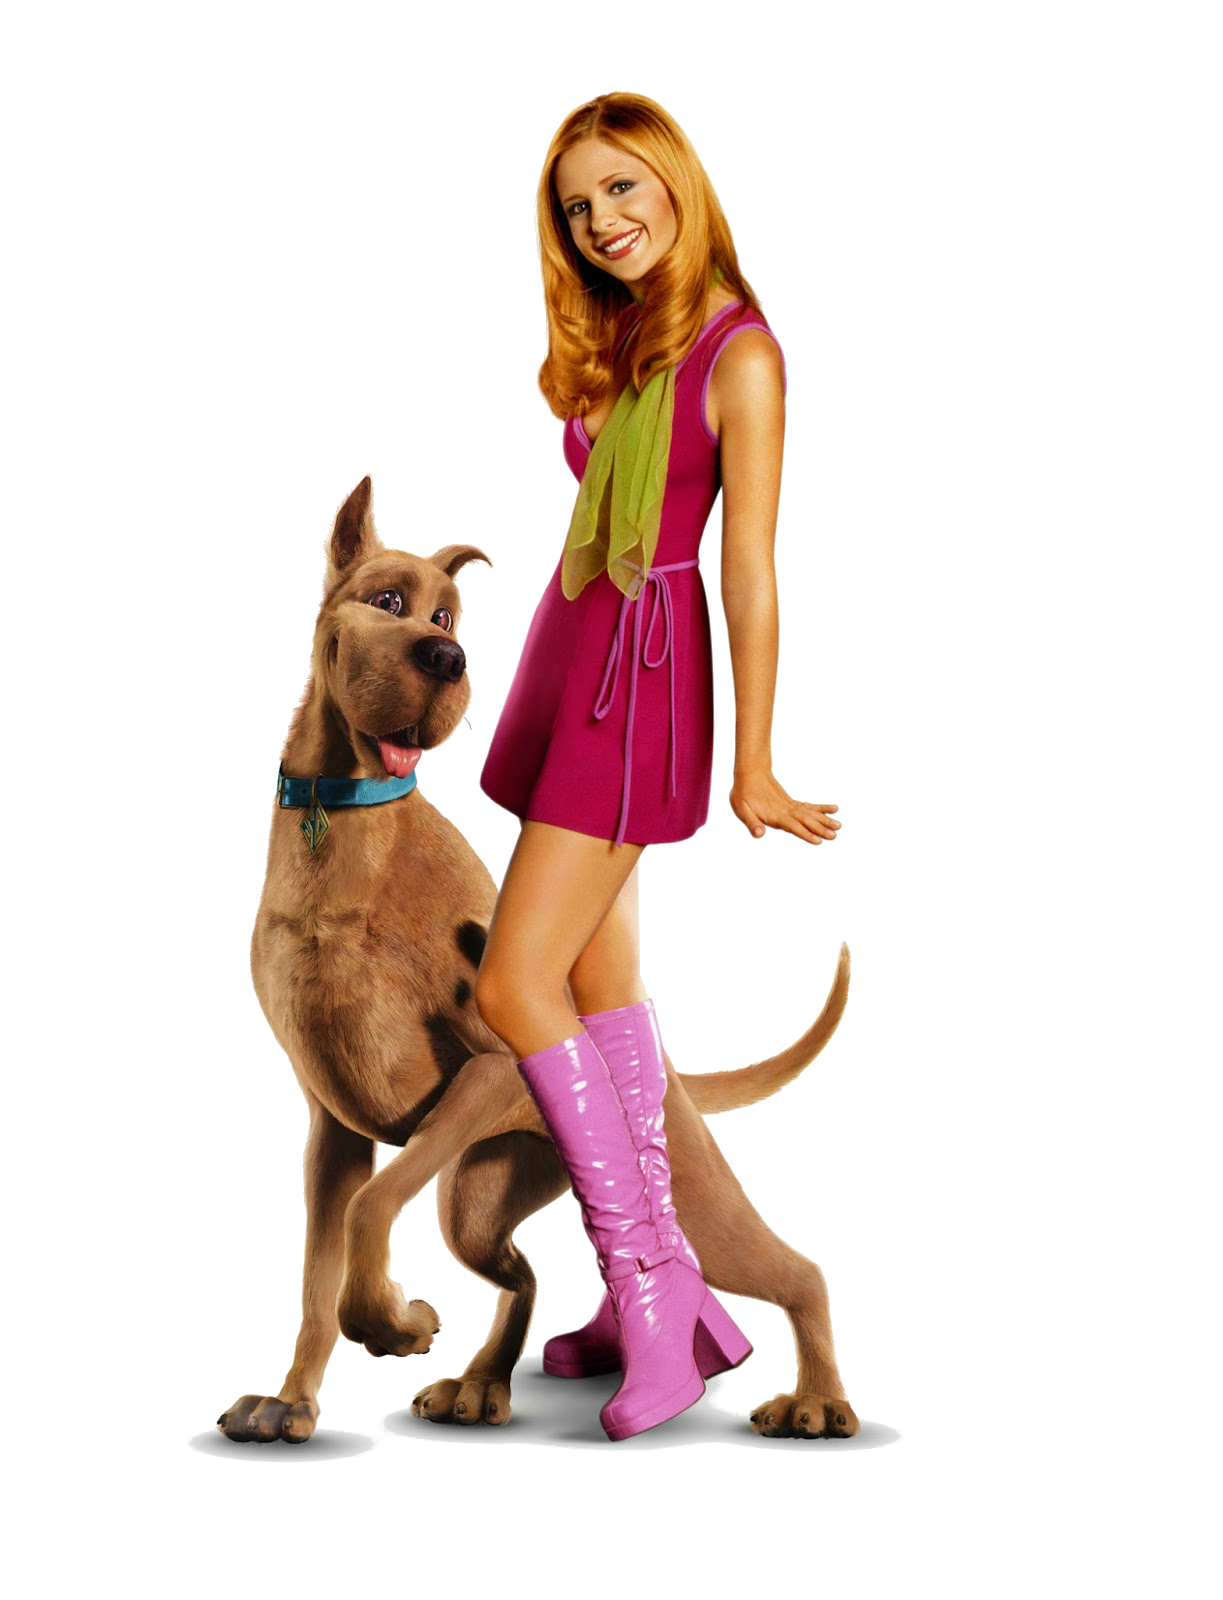 scooby_doo+and+daphne.png